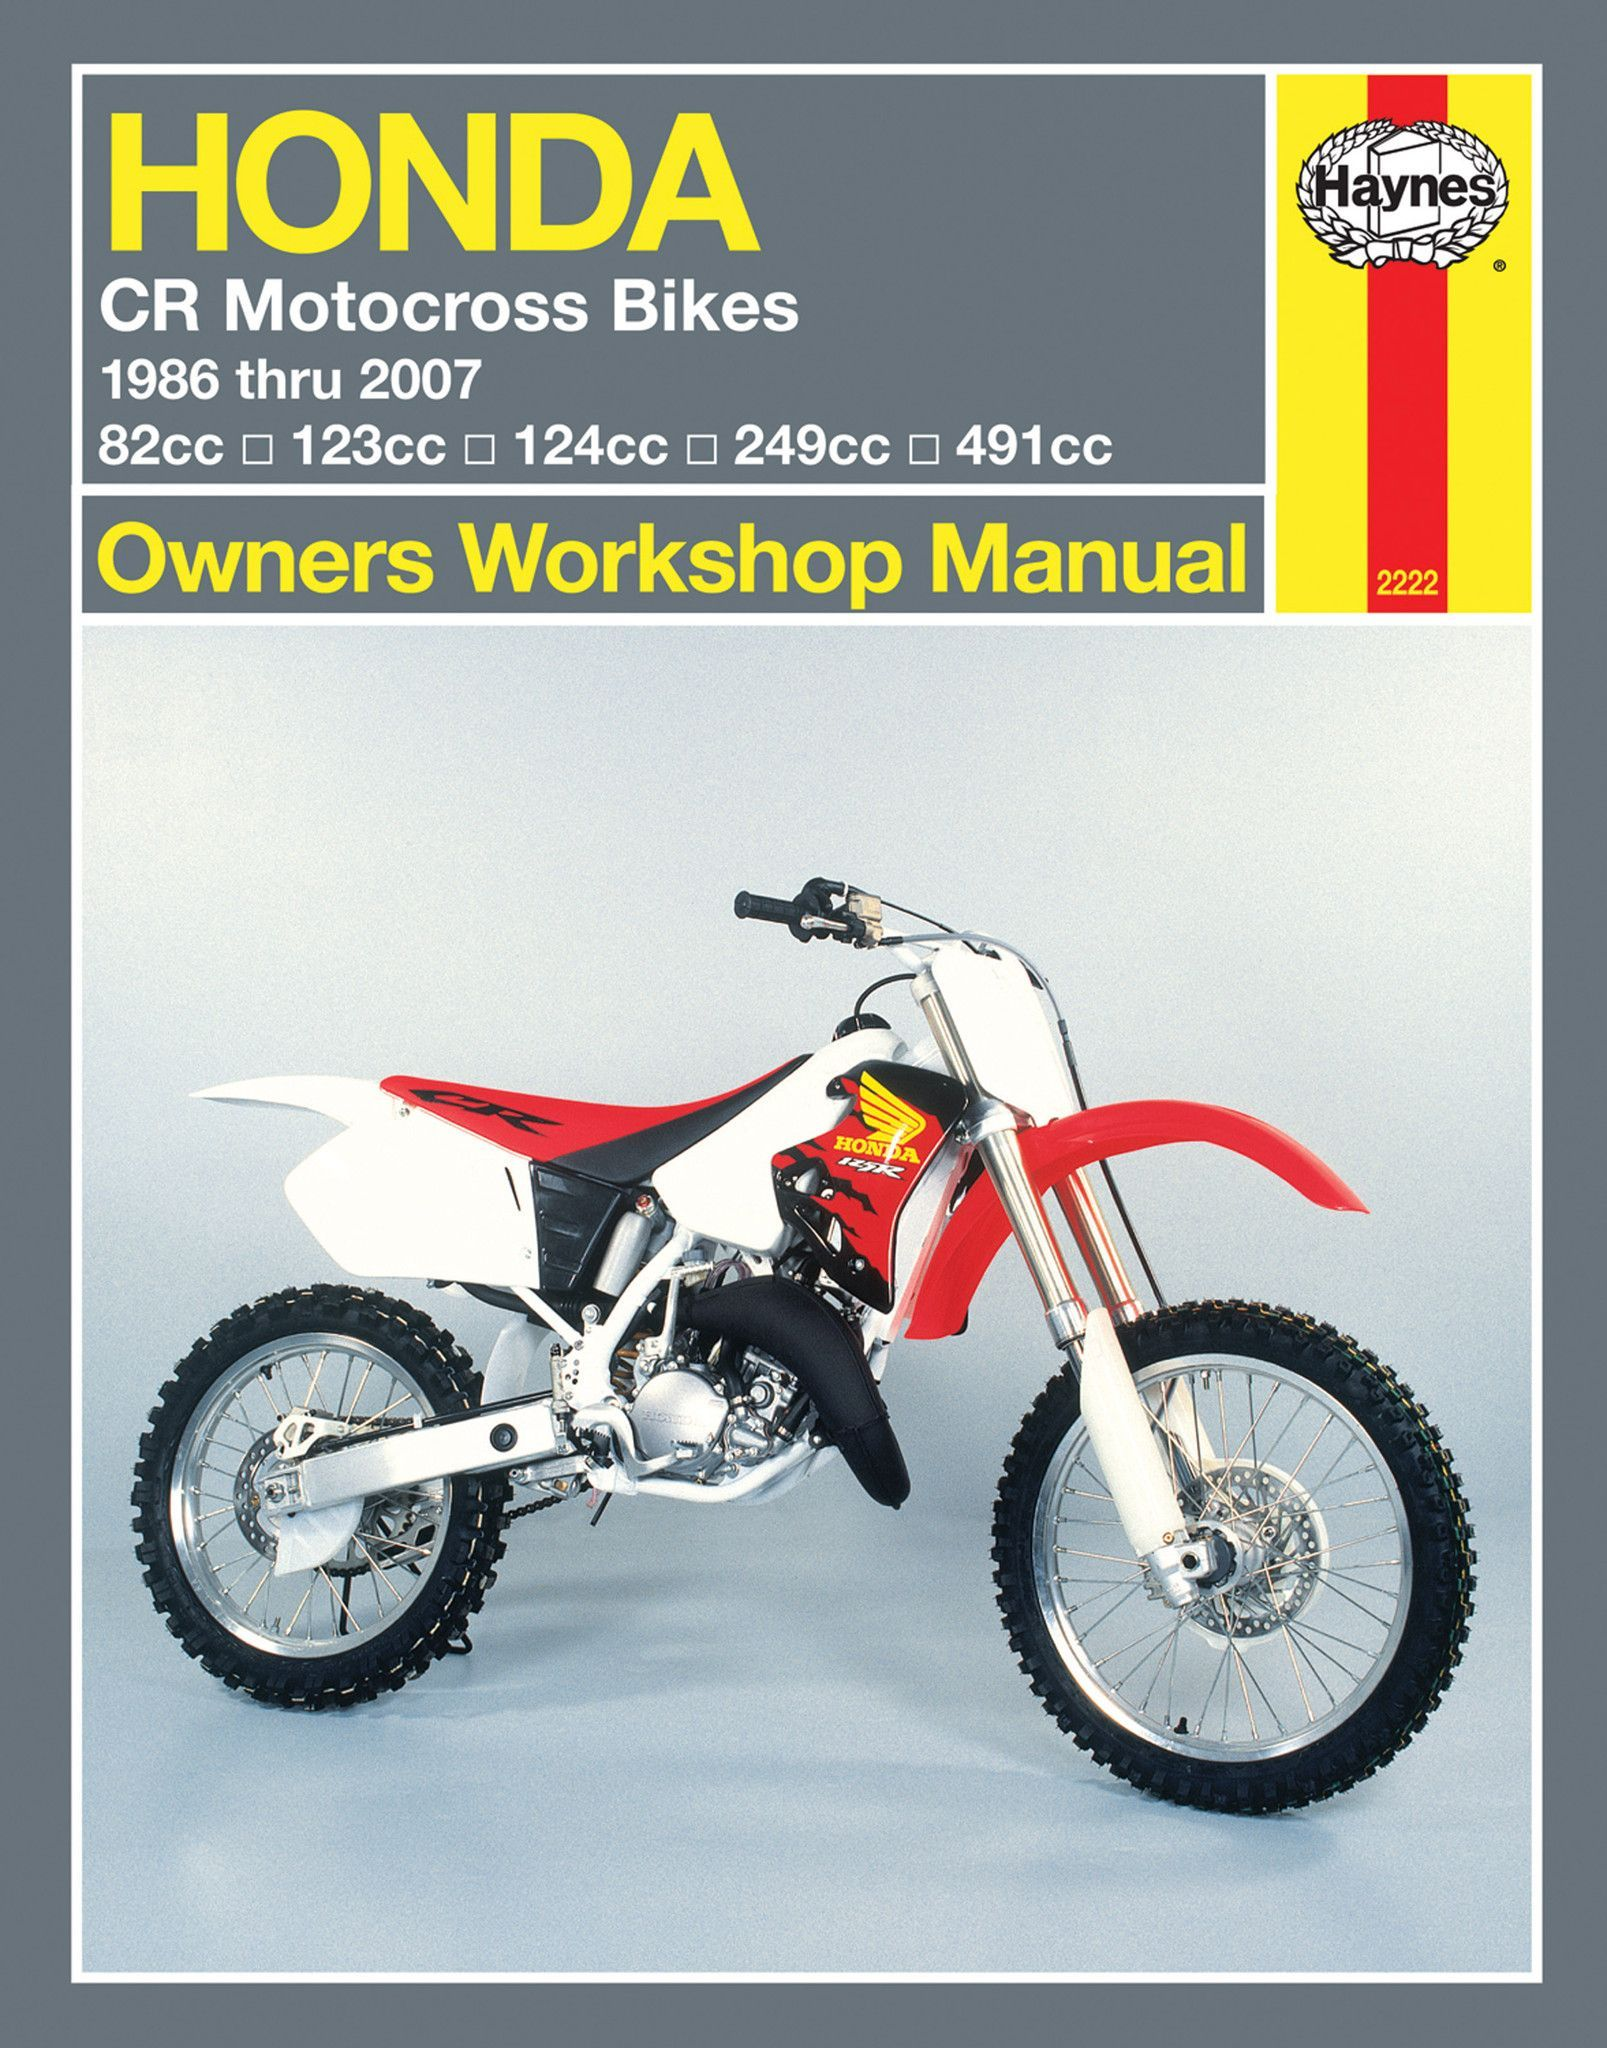 Haynes M2222 Repair Manual for 1986-07 Honda CR80 Models / CR125R / CR250R  / CR500R